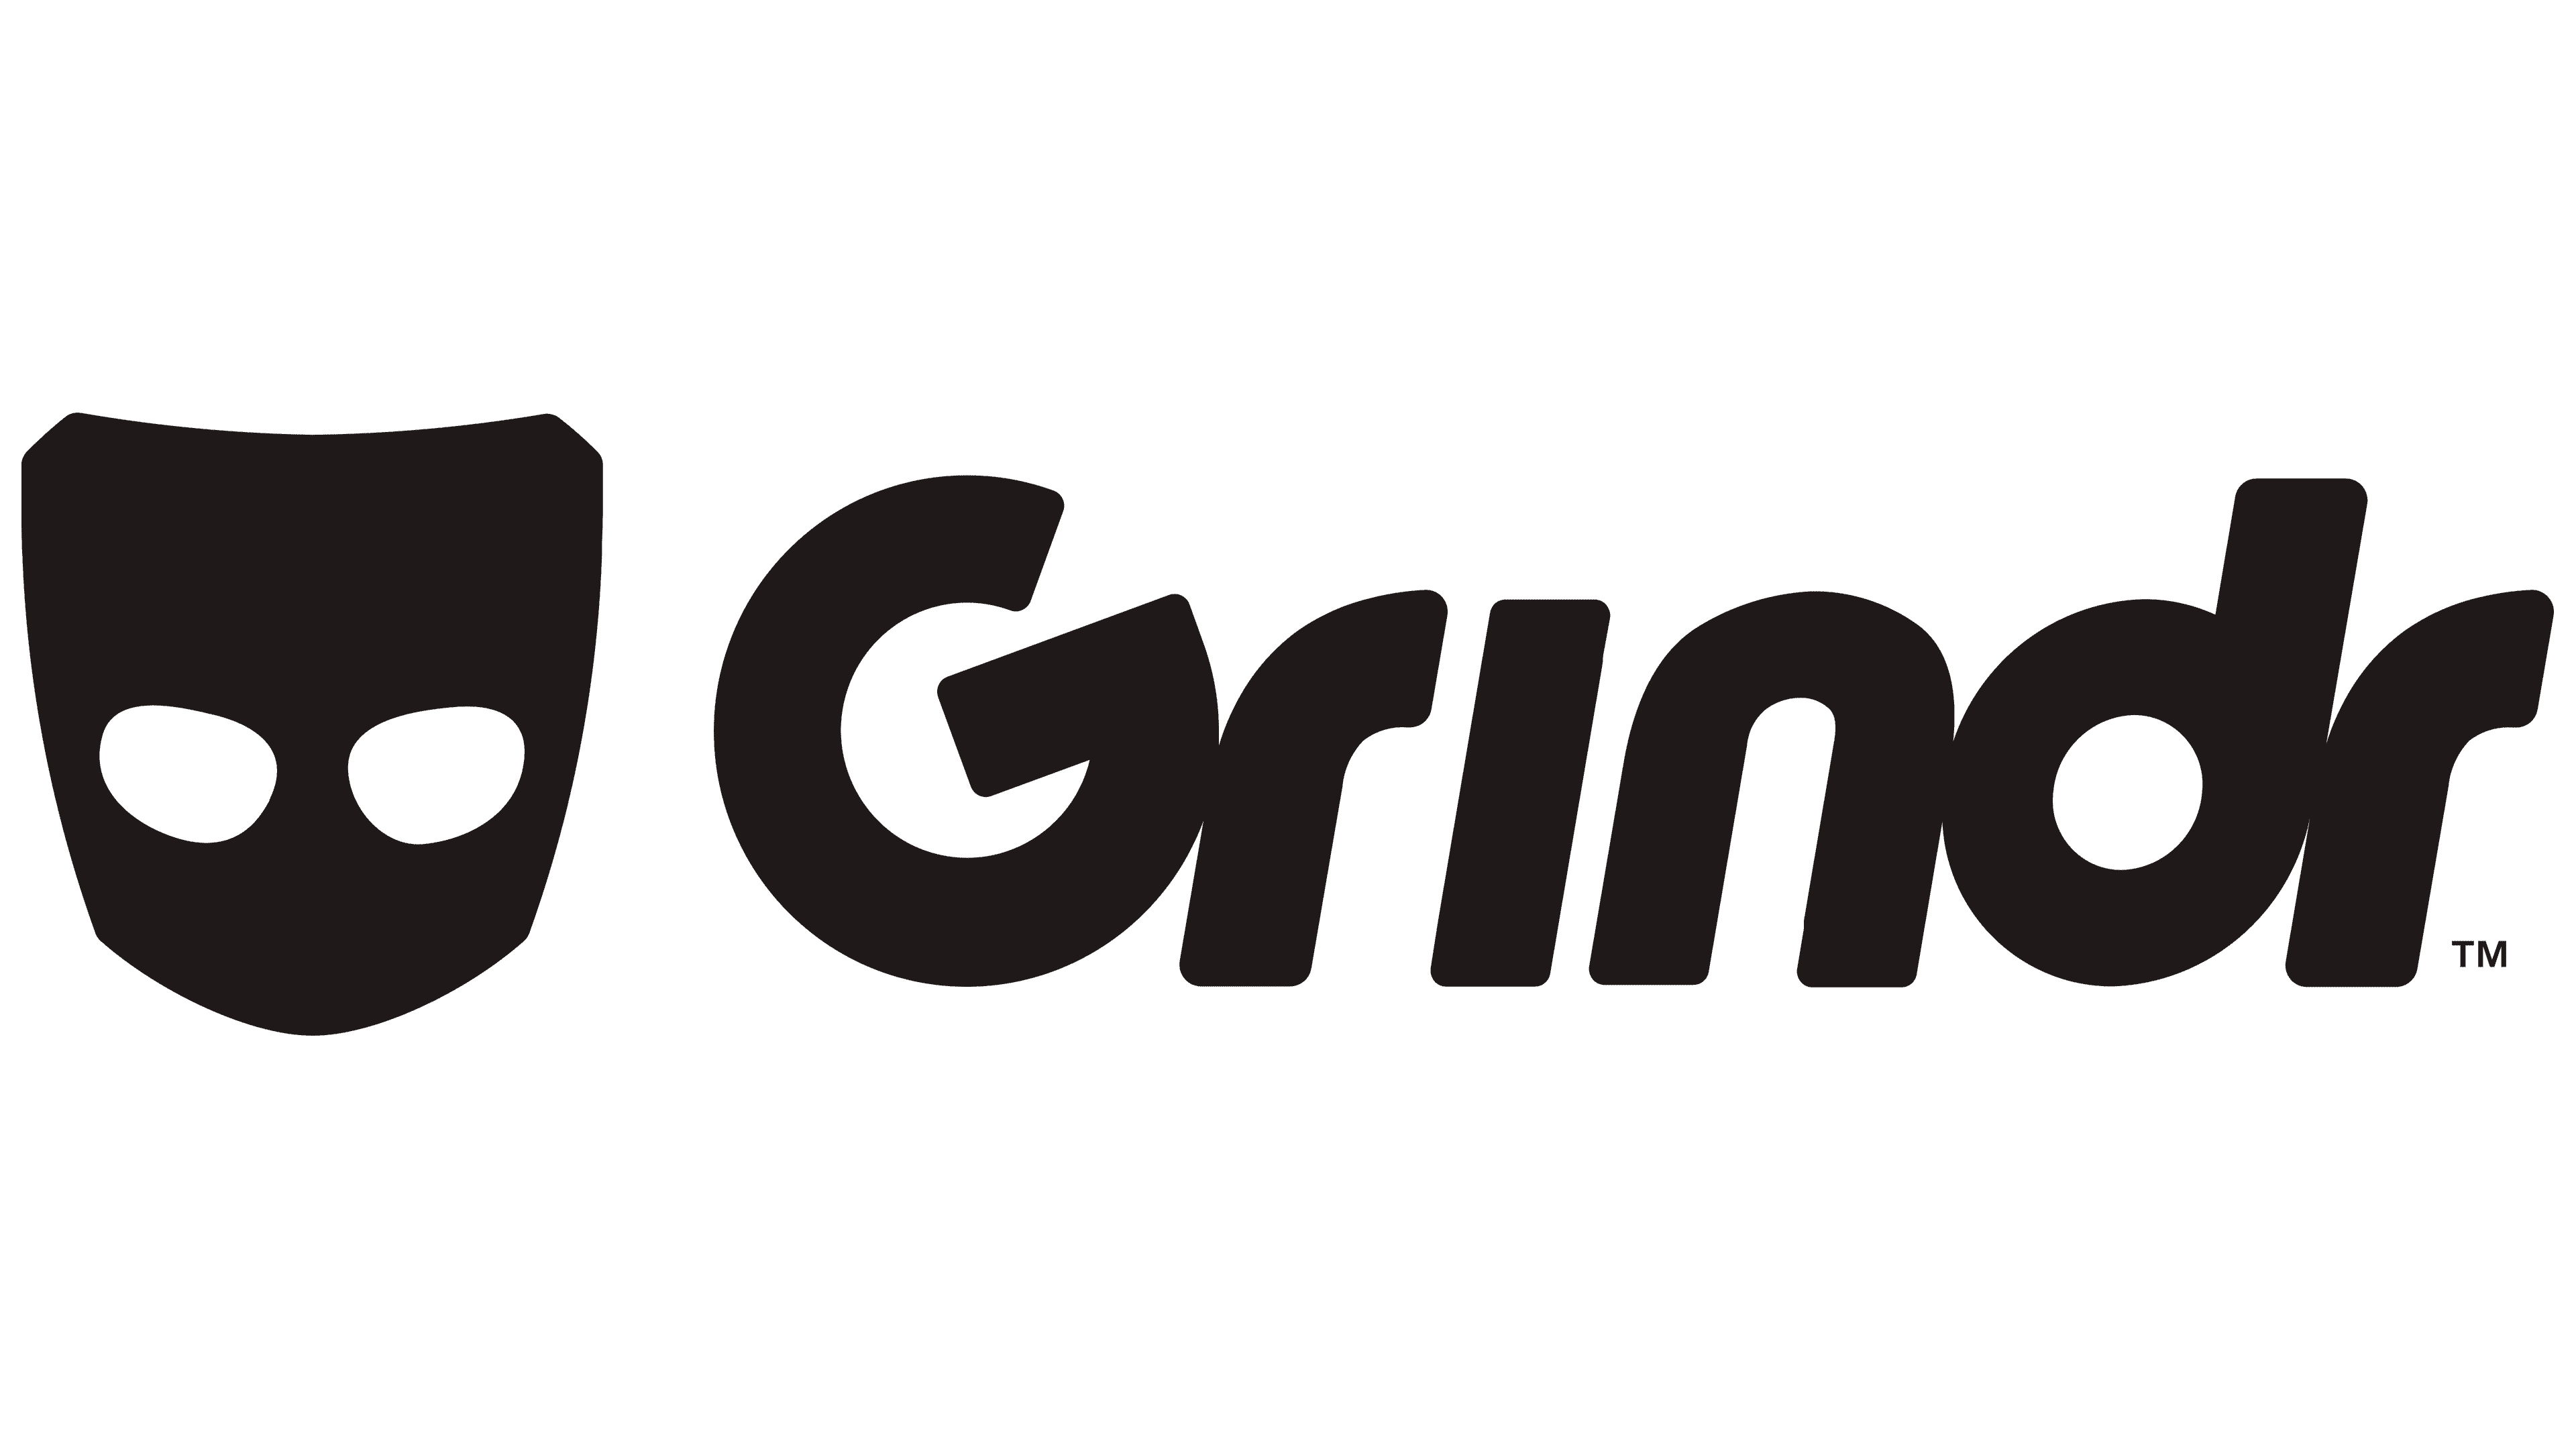 Meanings grindr gaymoji Sexting with